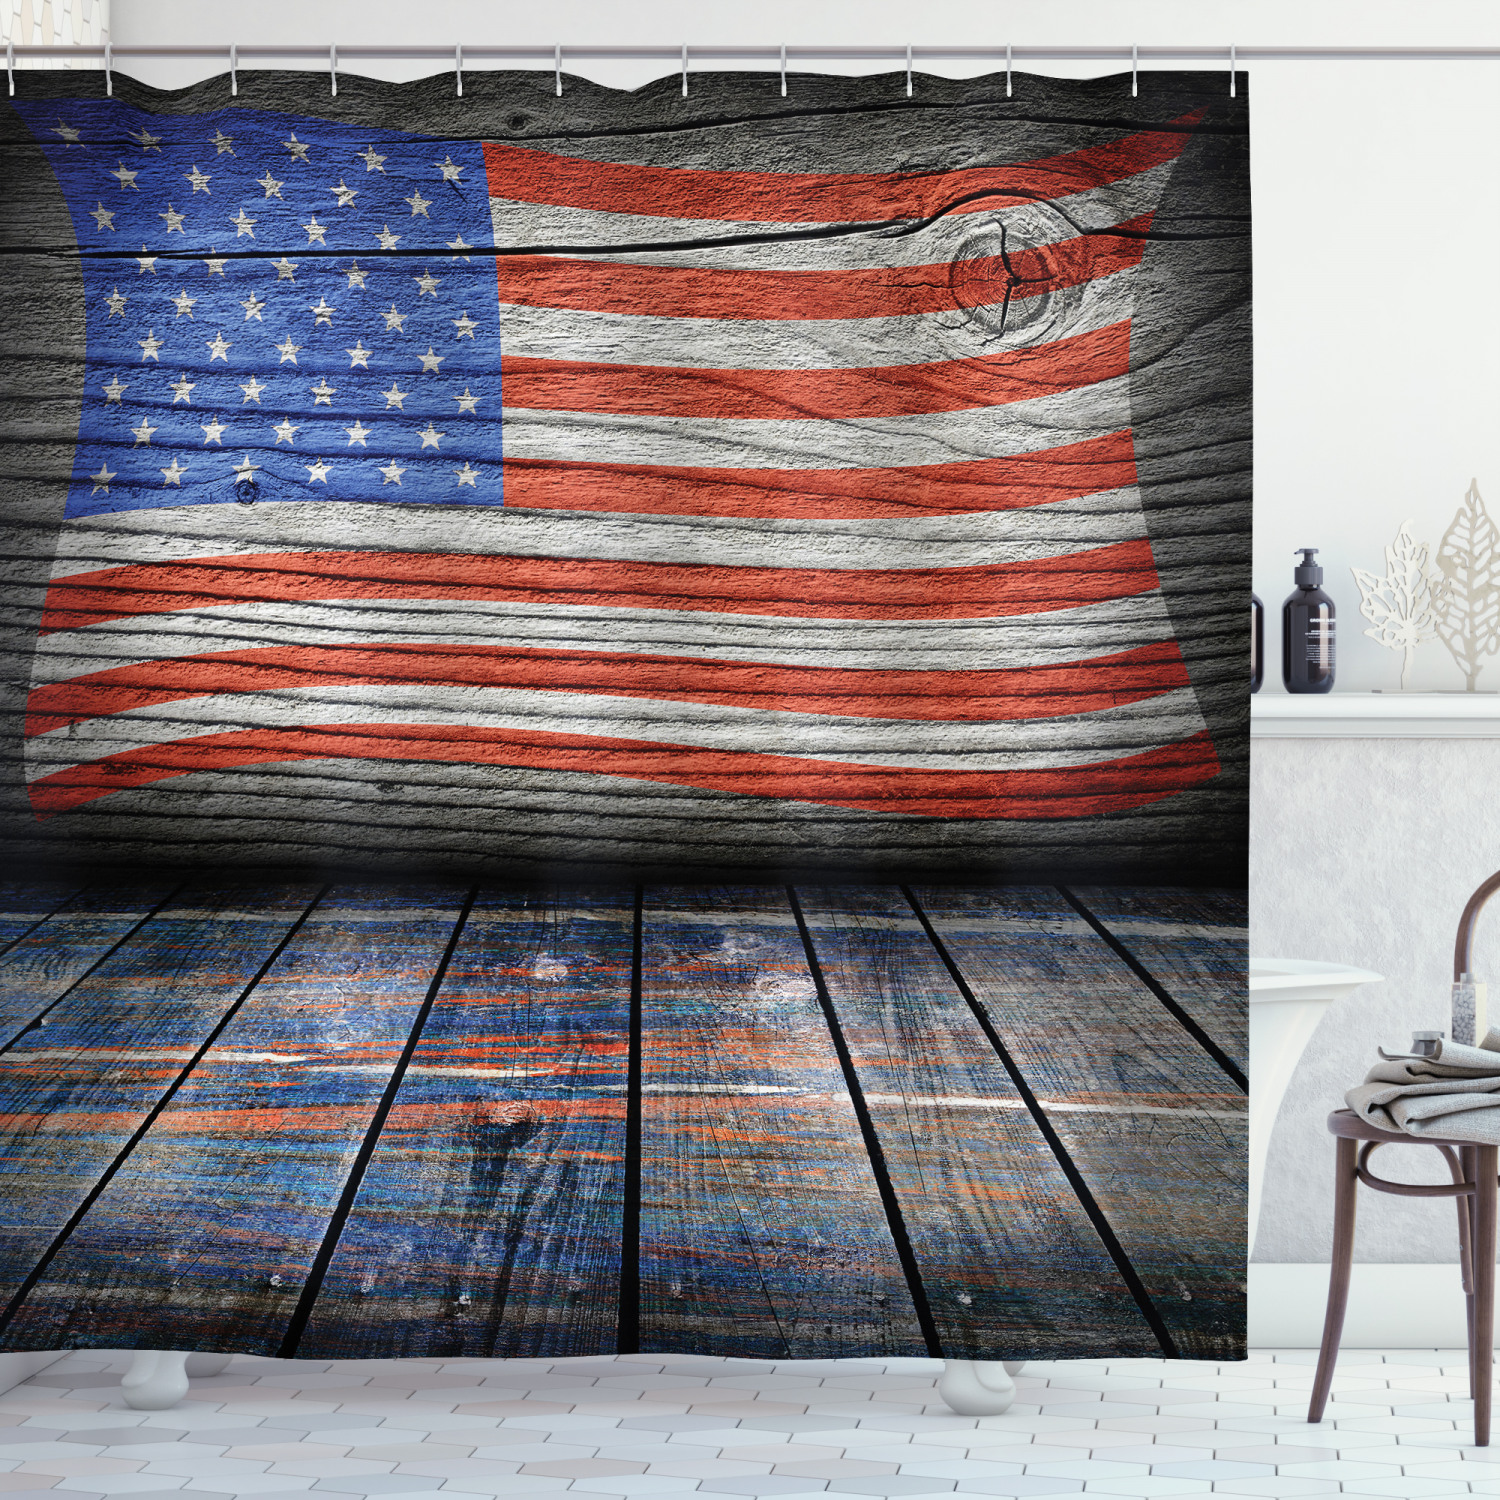 rustic decor american usa flag shower curtain set fourth of july independence day wooden looking floor log view wall rippled image bathroom